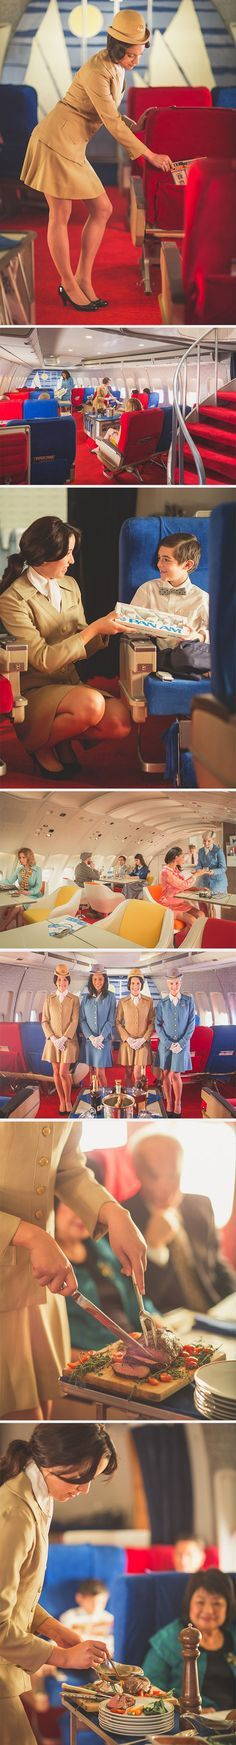 Pan Am In The 1960s | Pan Am, 1960s and 1970s